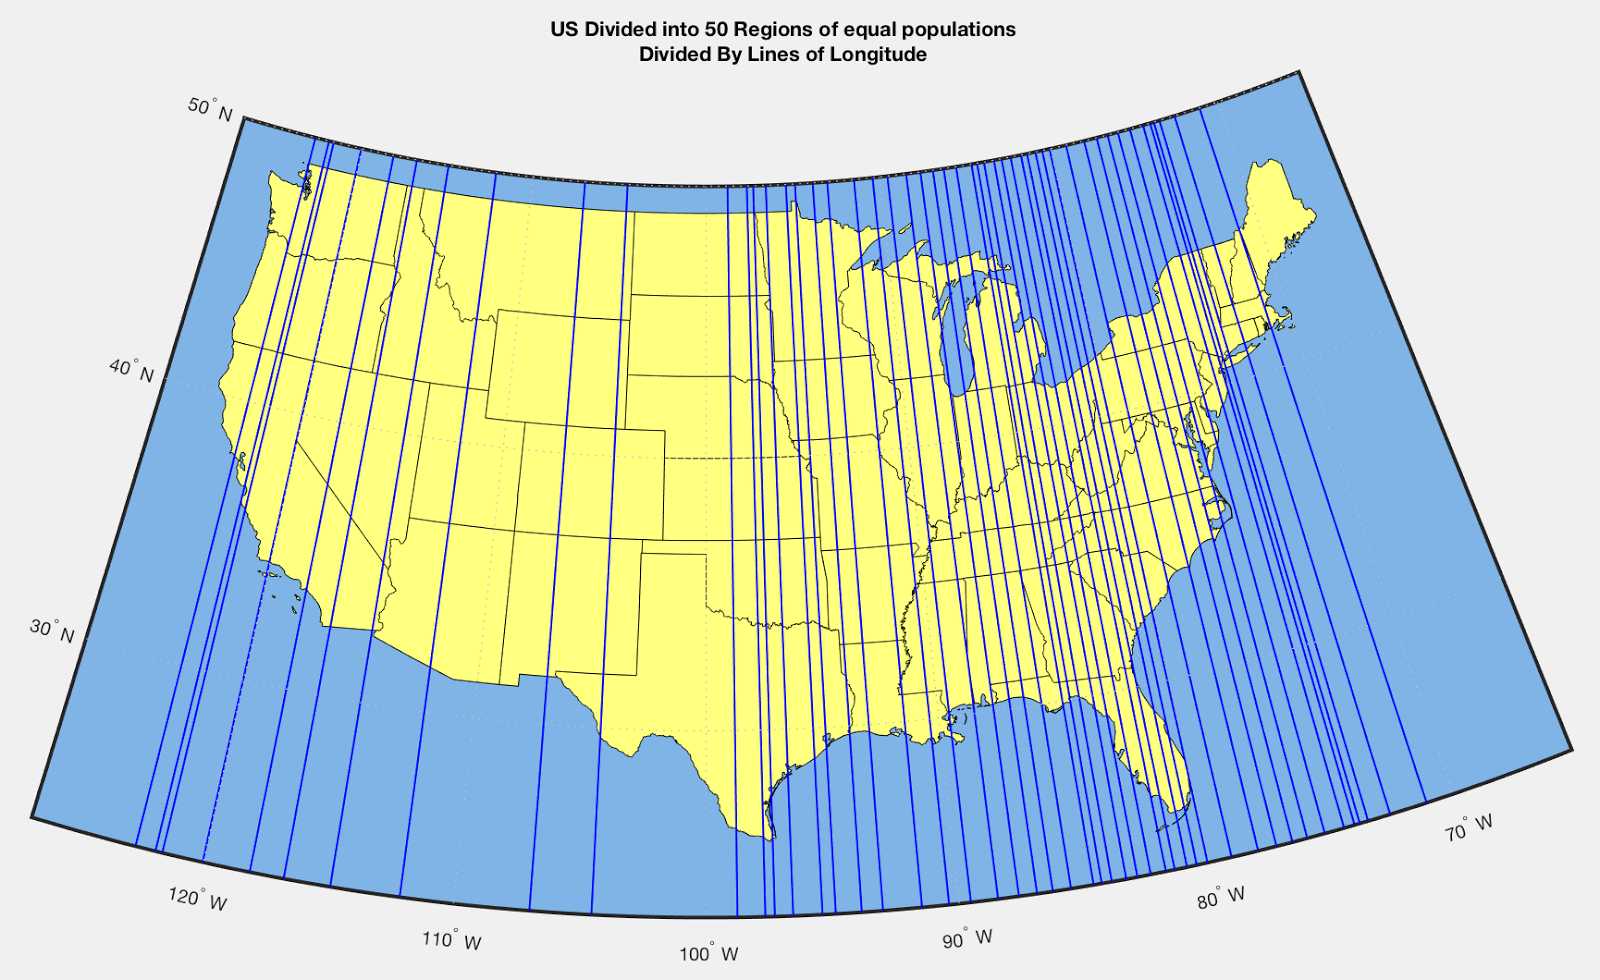 United States Map Divided Into Regions.United States Divided Into 50 Regions Of Equal Population Divided By